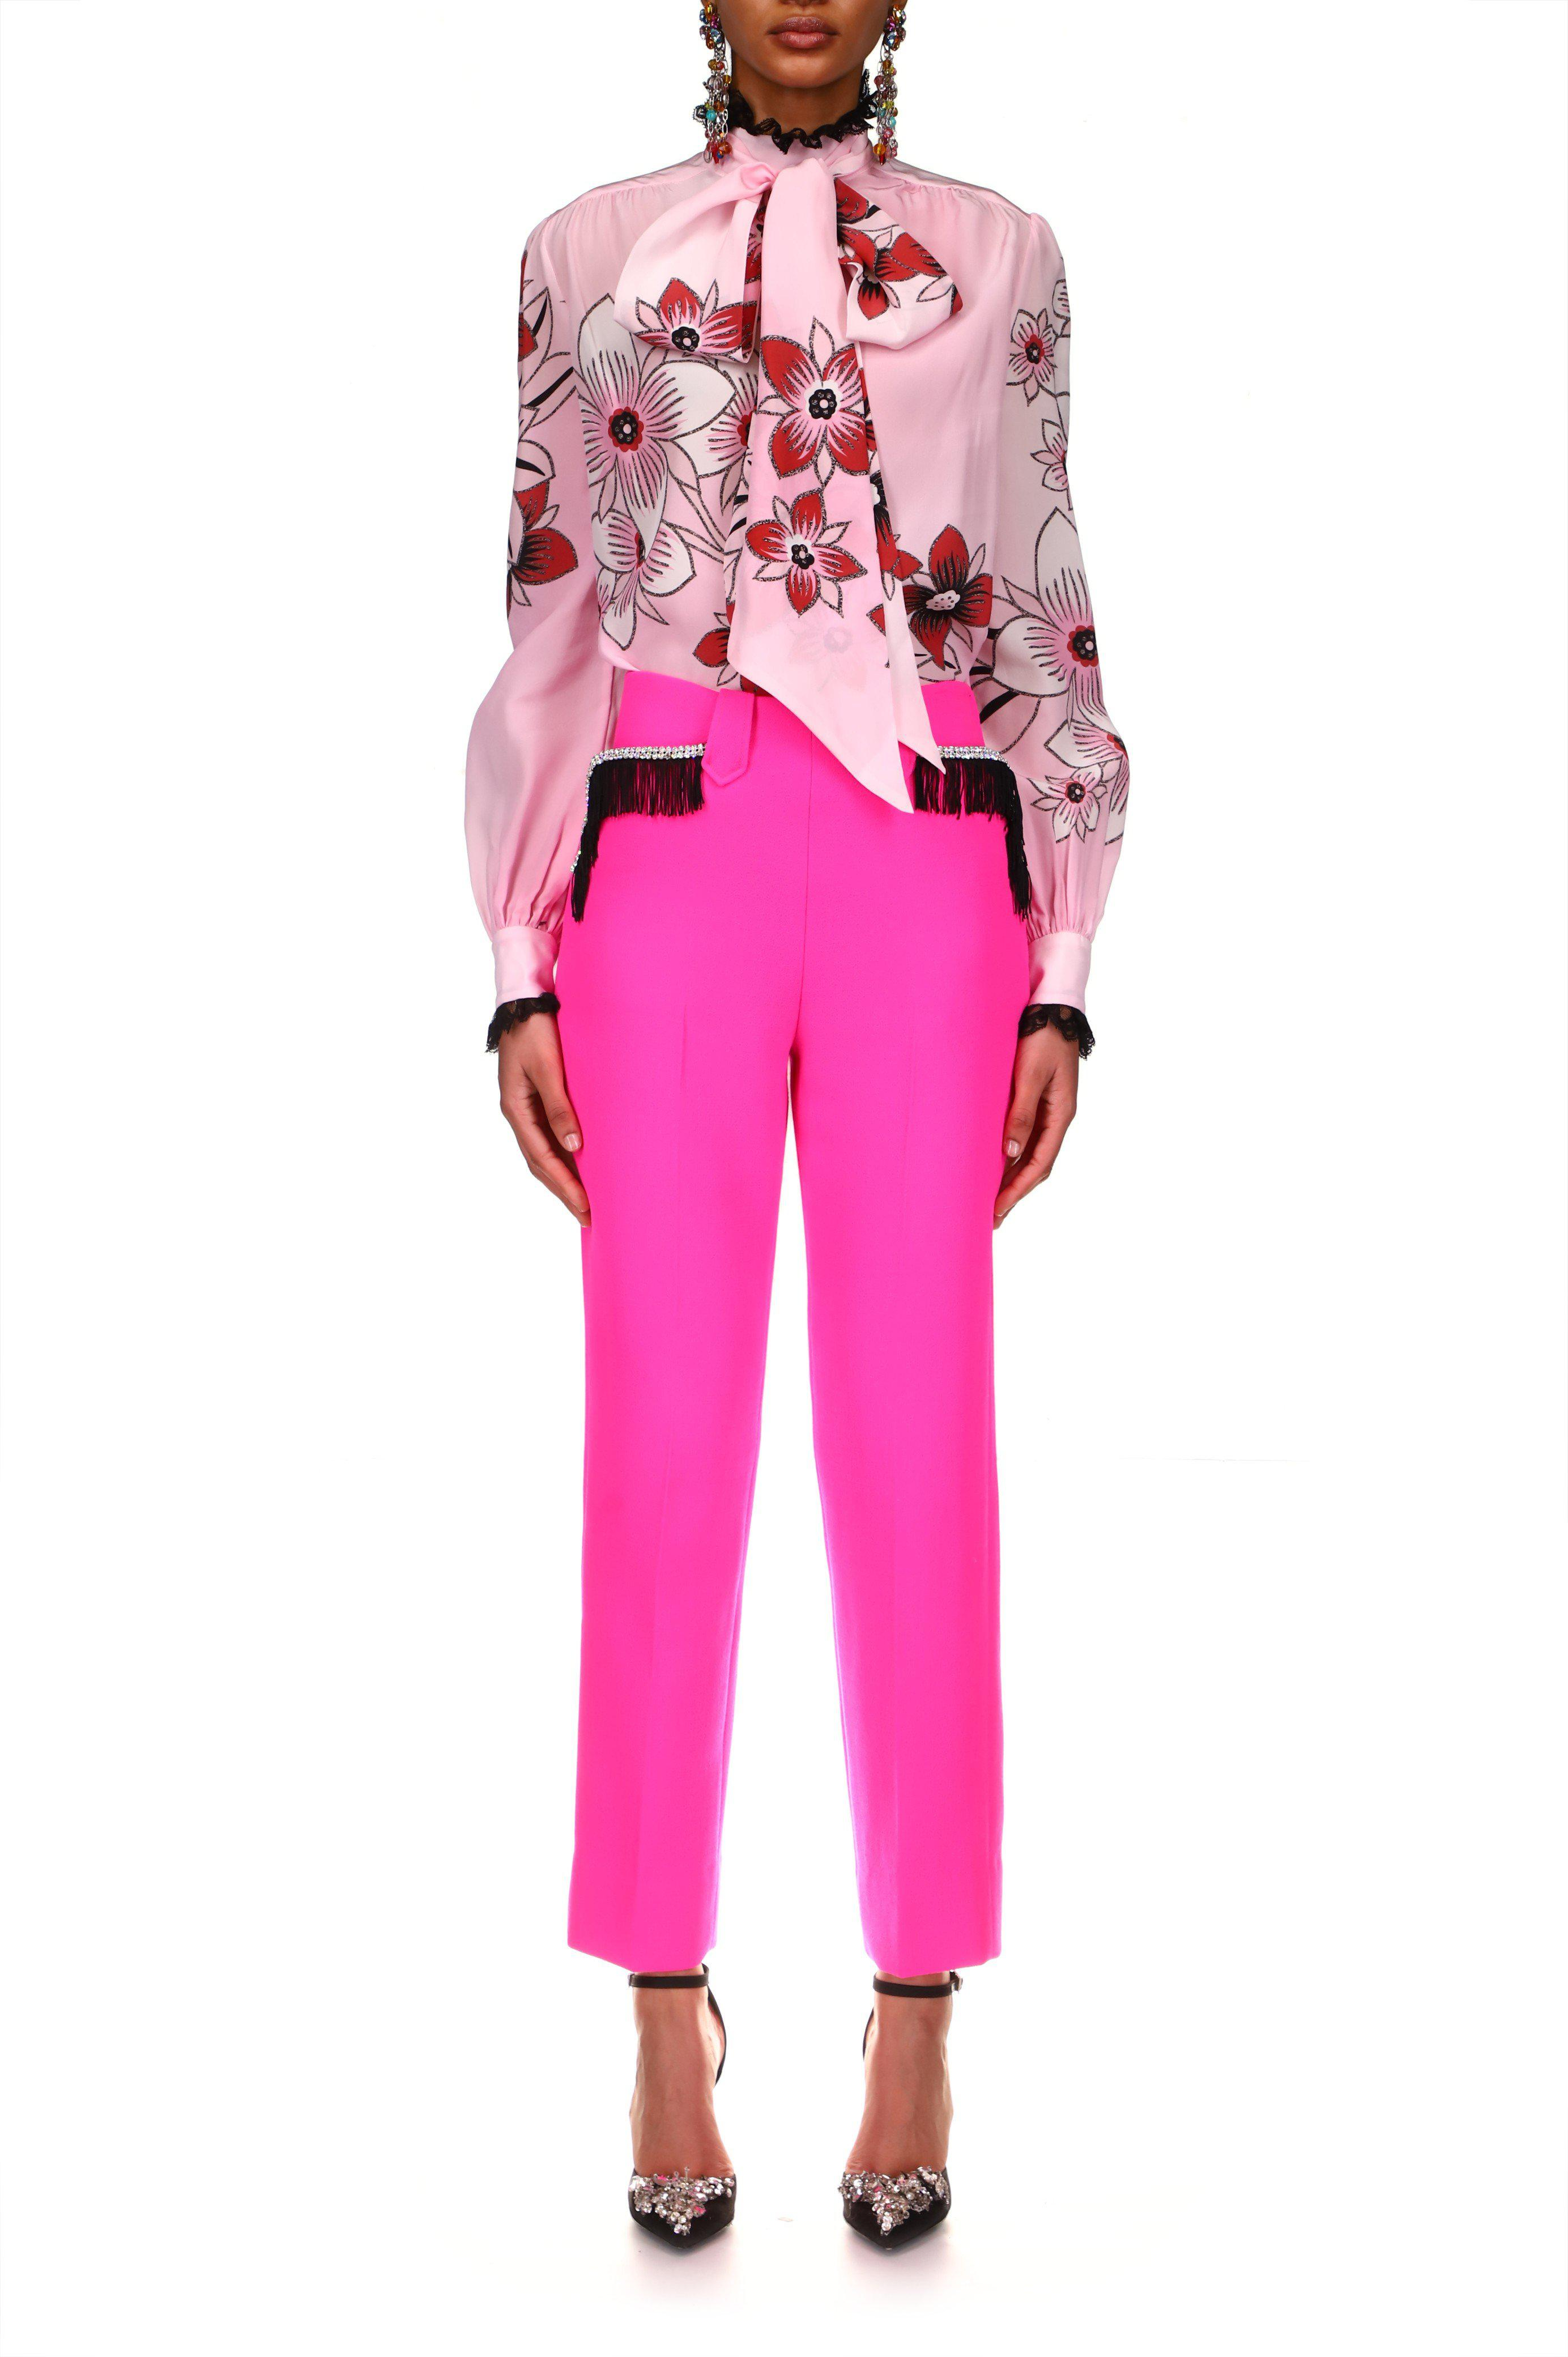 NEON PINK WOOL PANT WITH RHINESTONE AND FRINGE DETAIL